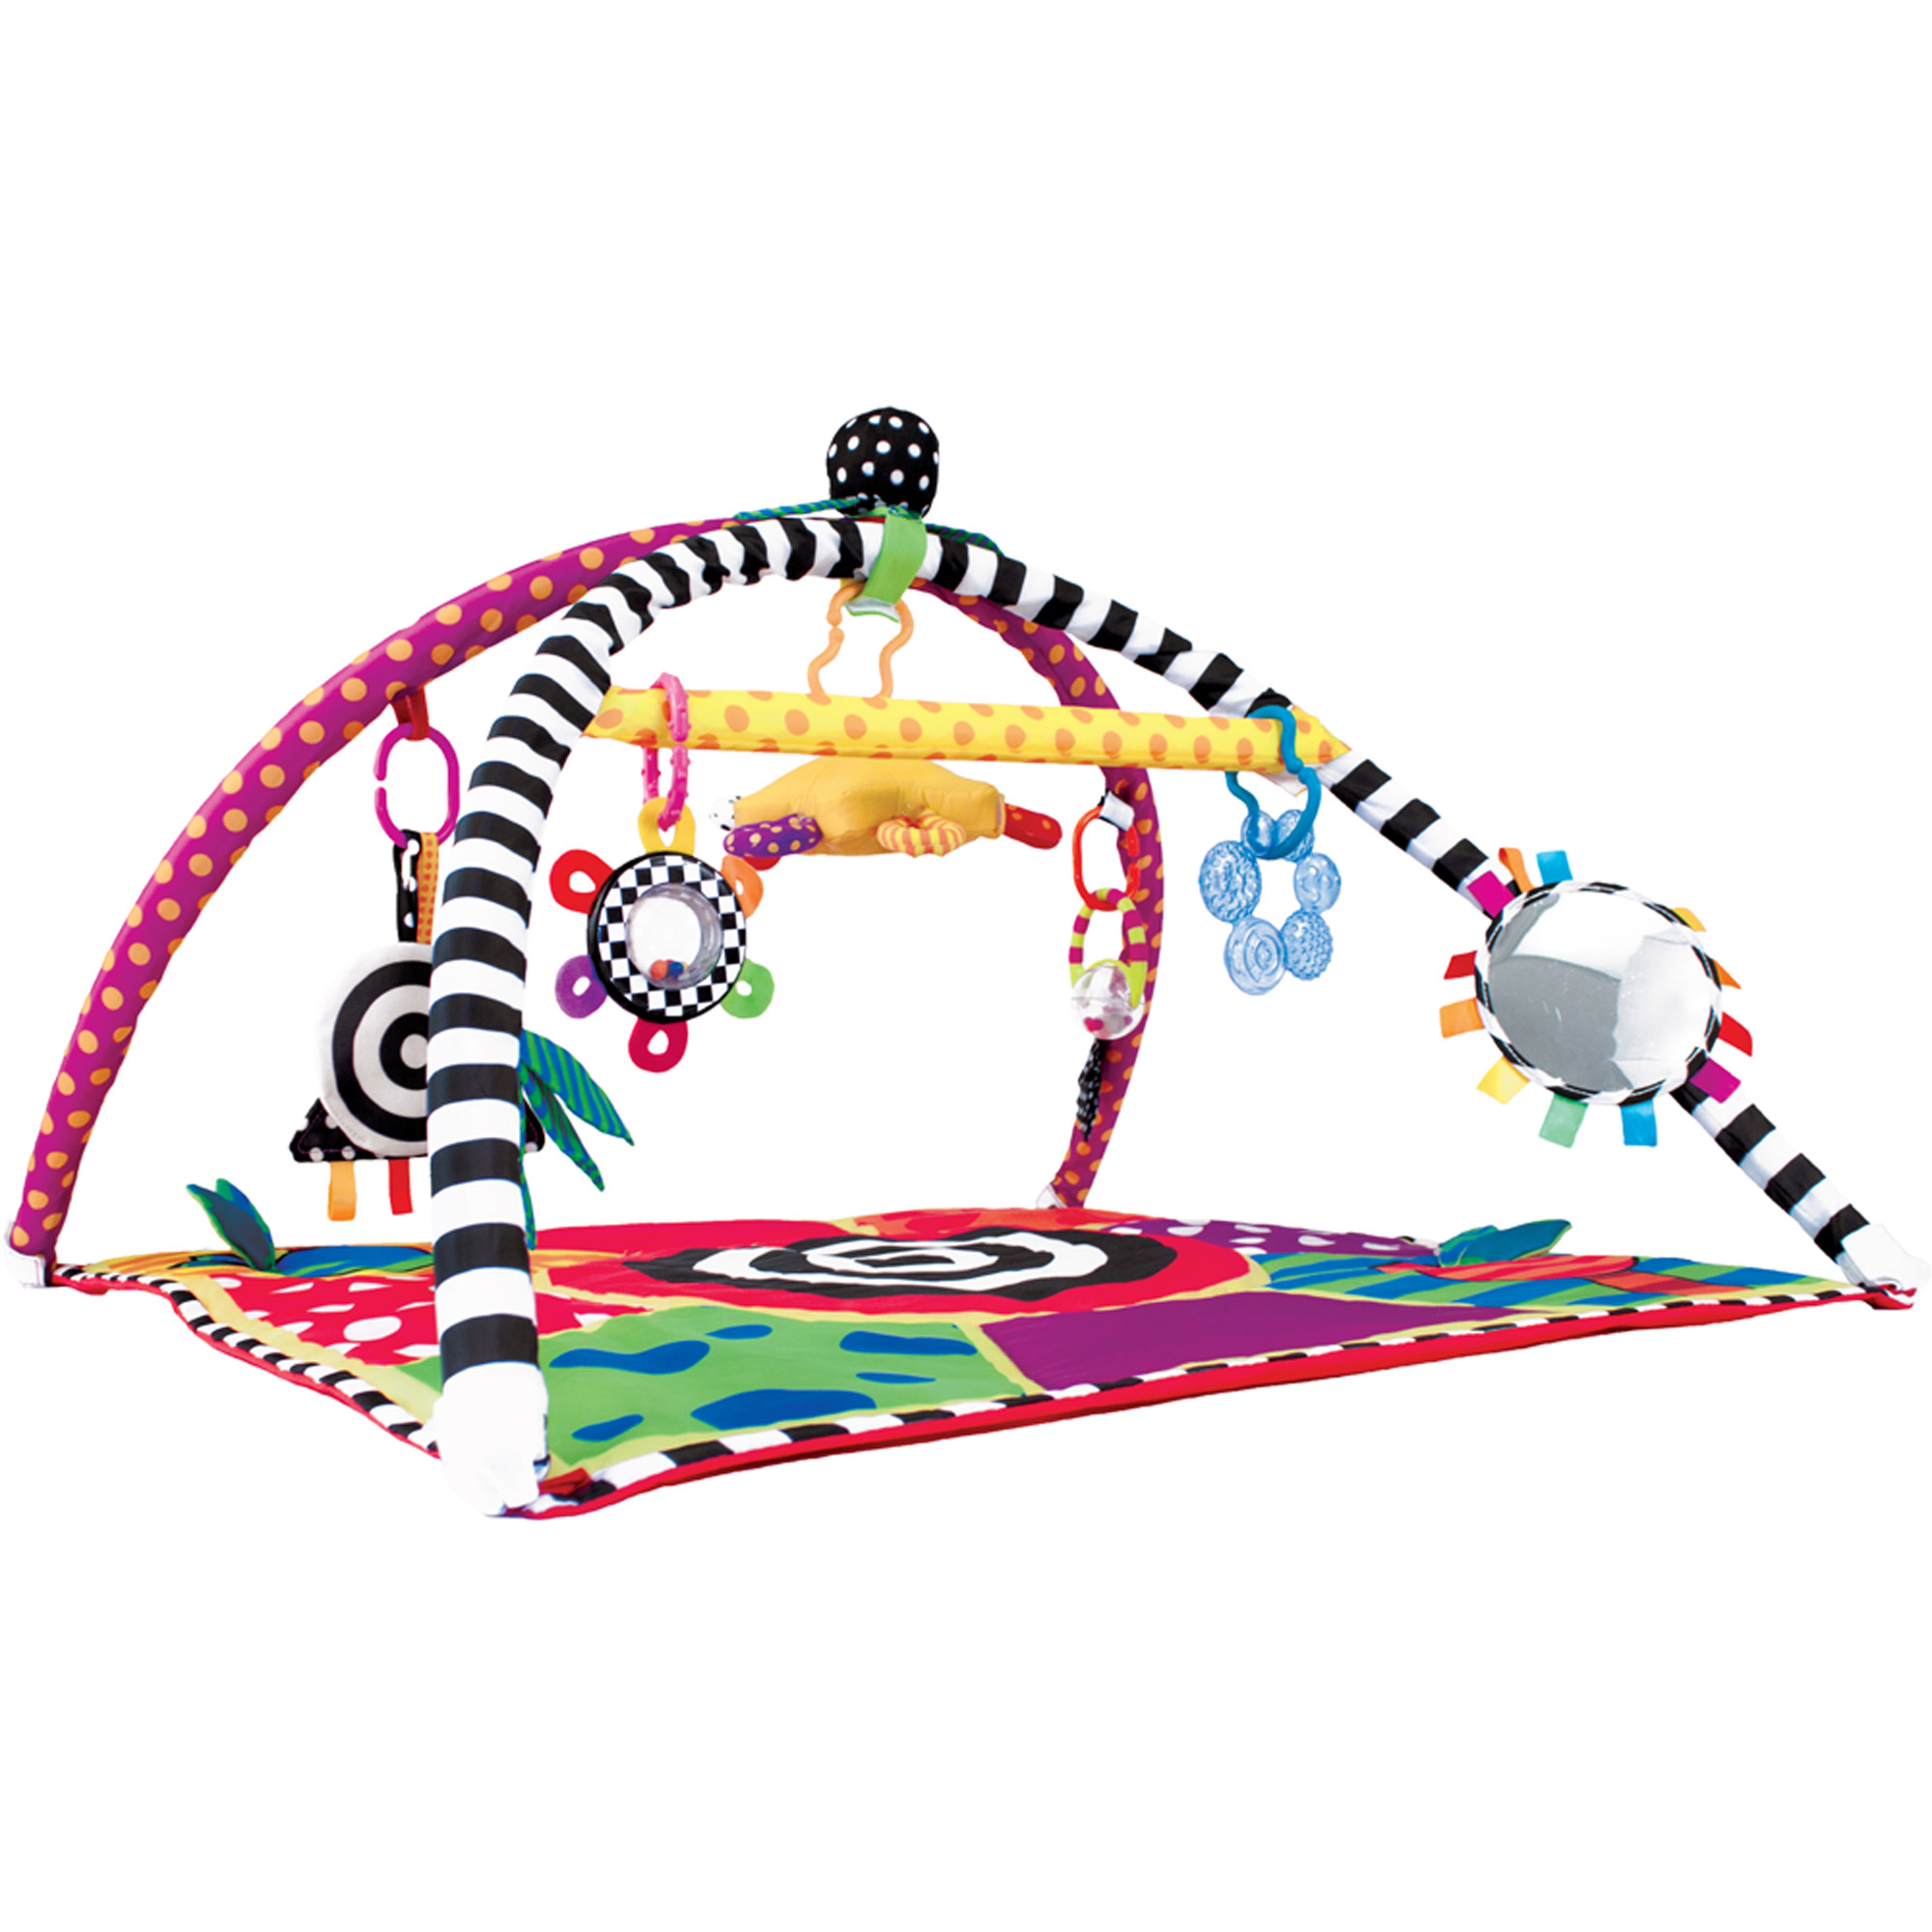 Sassy Sensory Gym with Links and Learn Interchangeable Toys